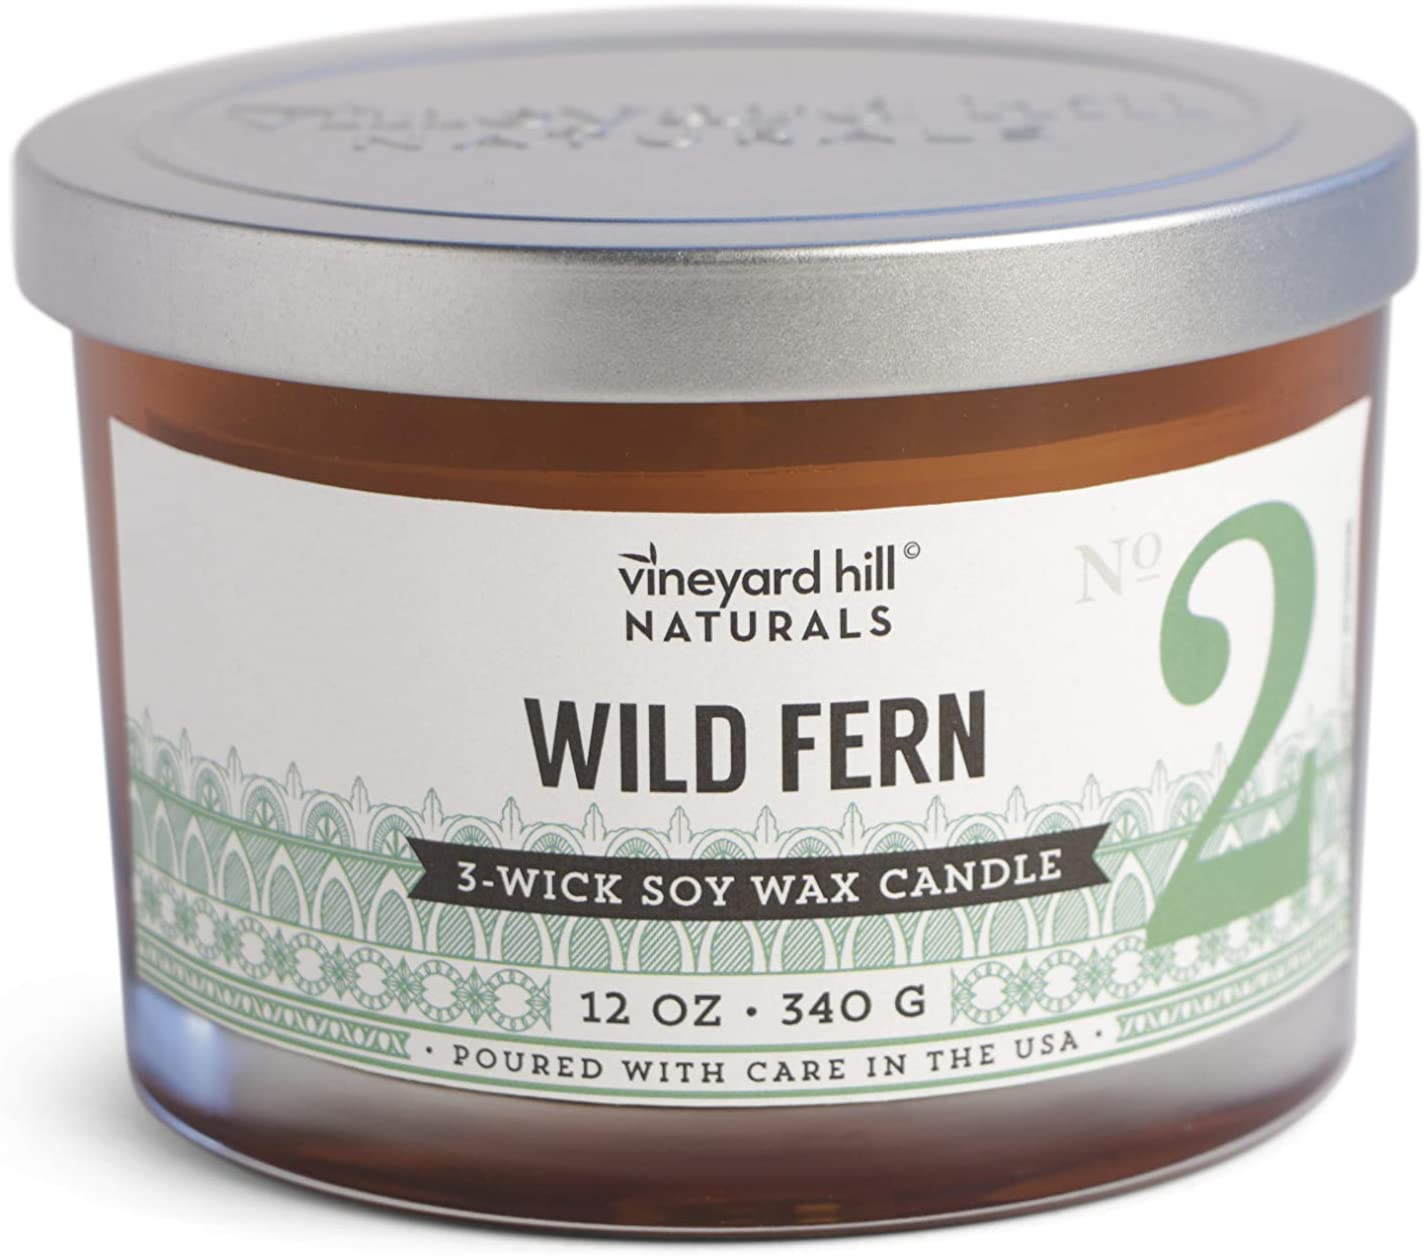 Vineyard Hill Naturals Mandarin /& Redwood Candle 8oz Soy Wax Hand Poured